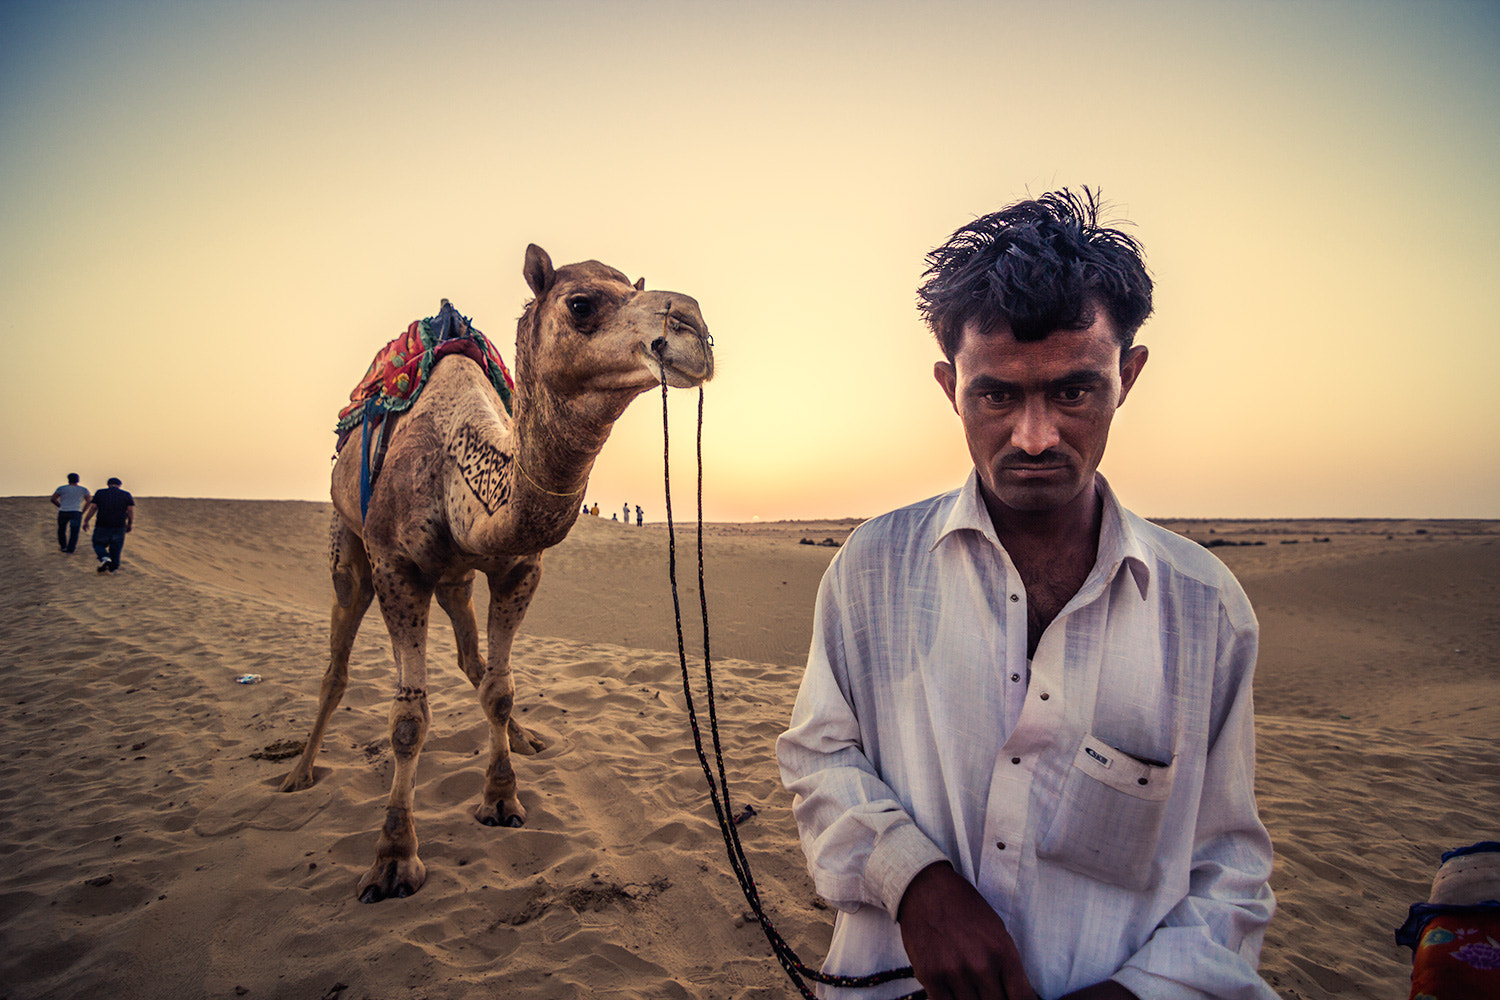 Photograph Lost in Desert 3 by Aman Dhingra on 500px